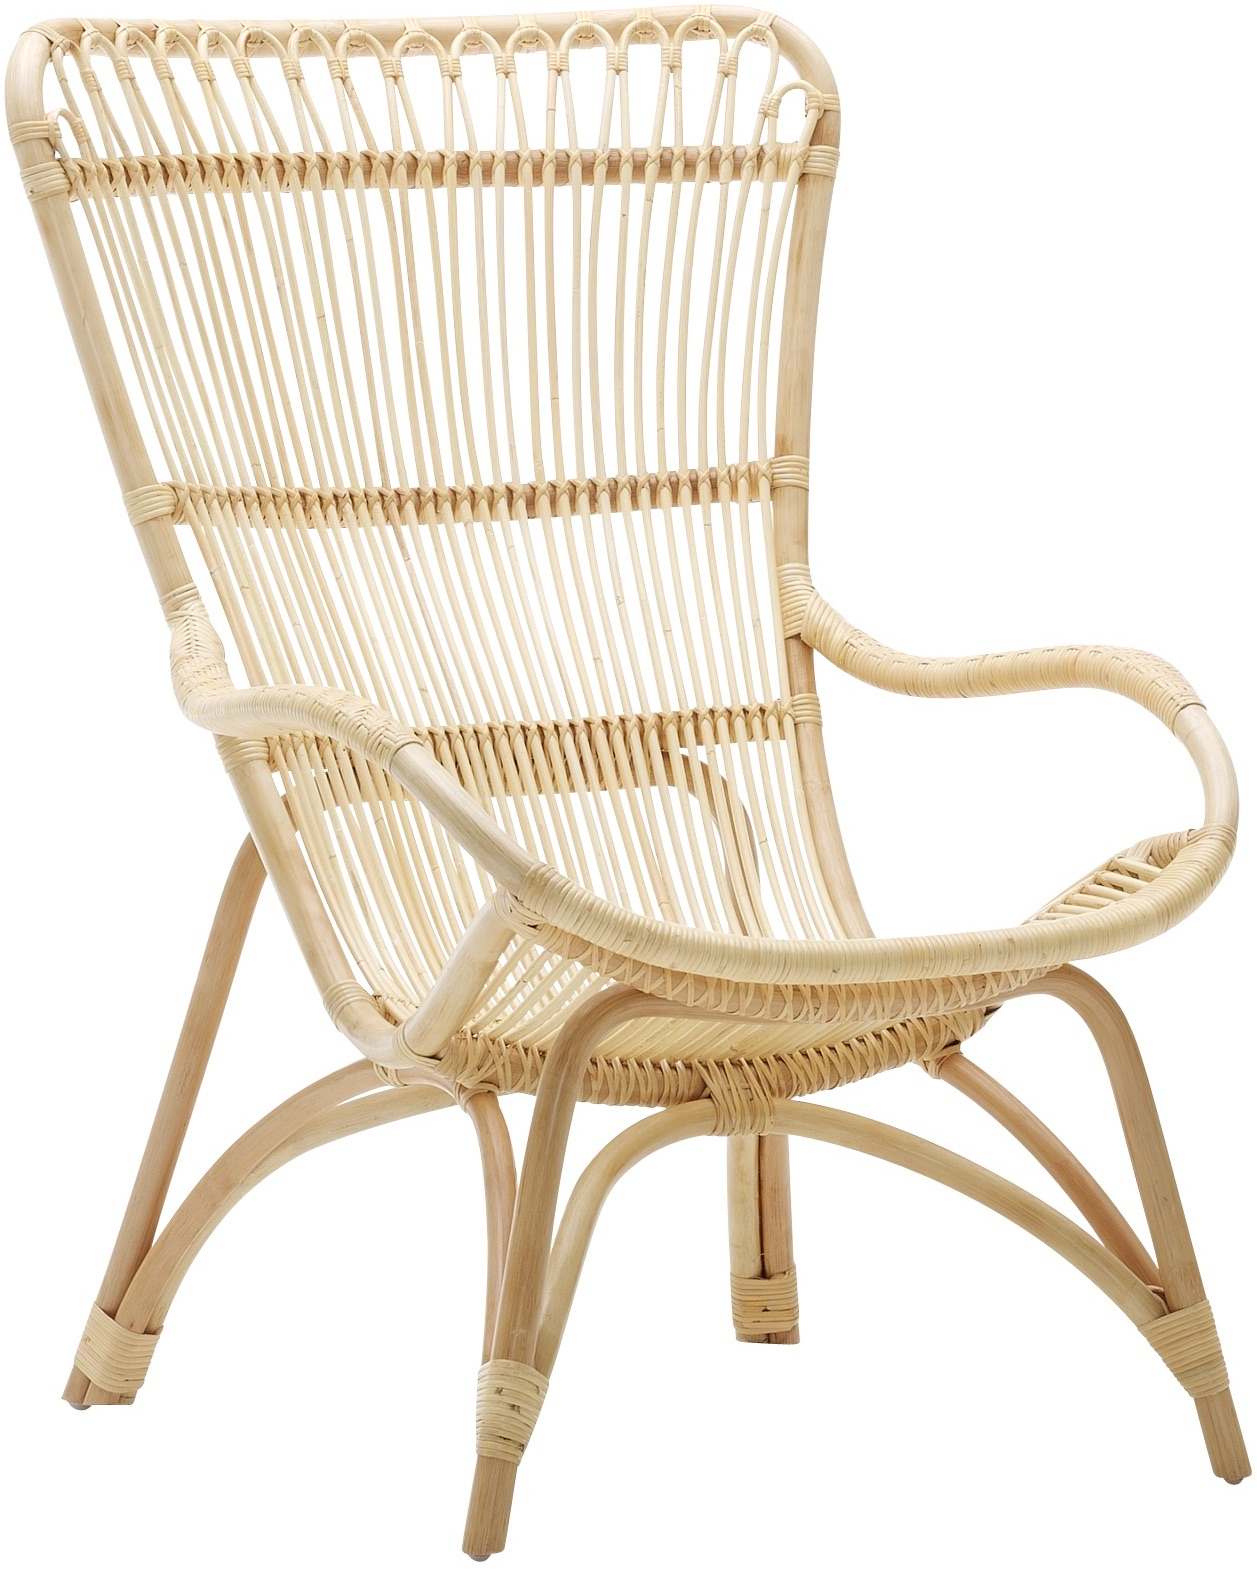 Sika design collection monet rocking chair fauteuil for Scandic design